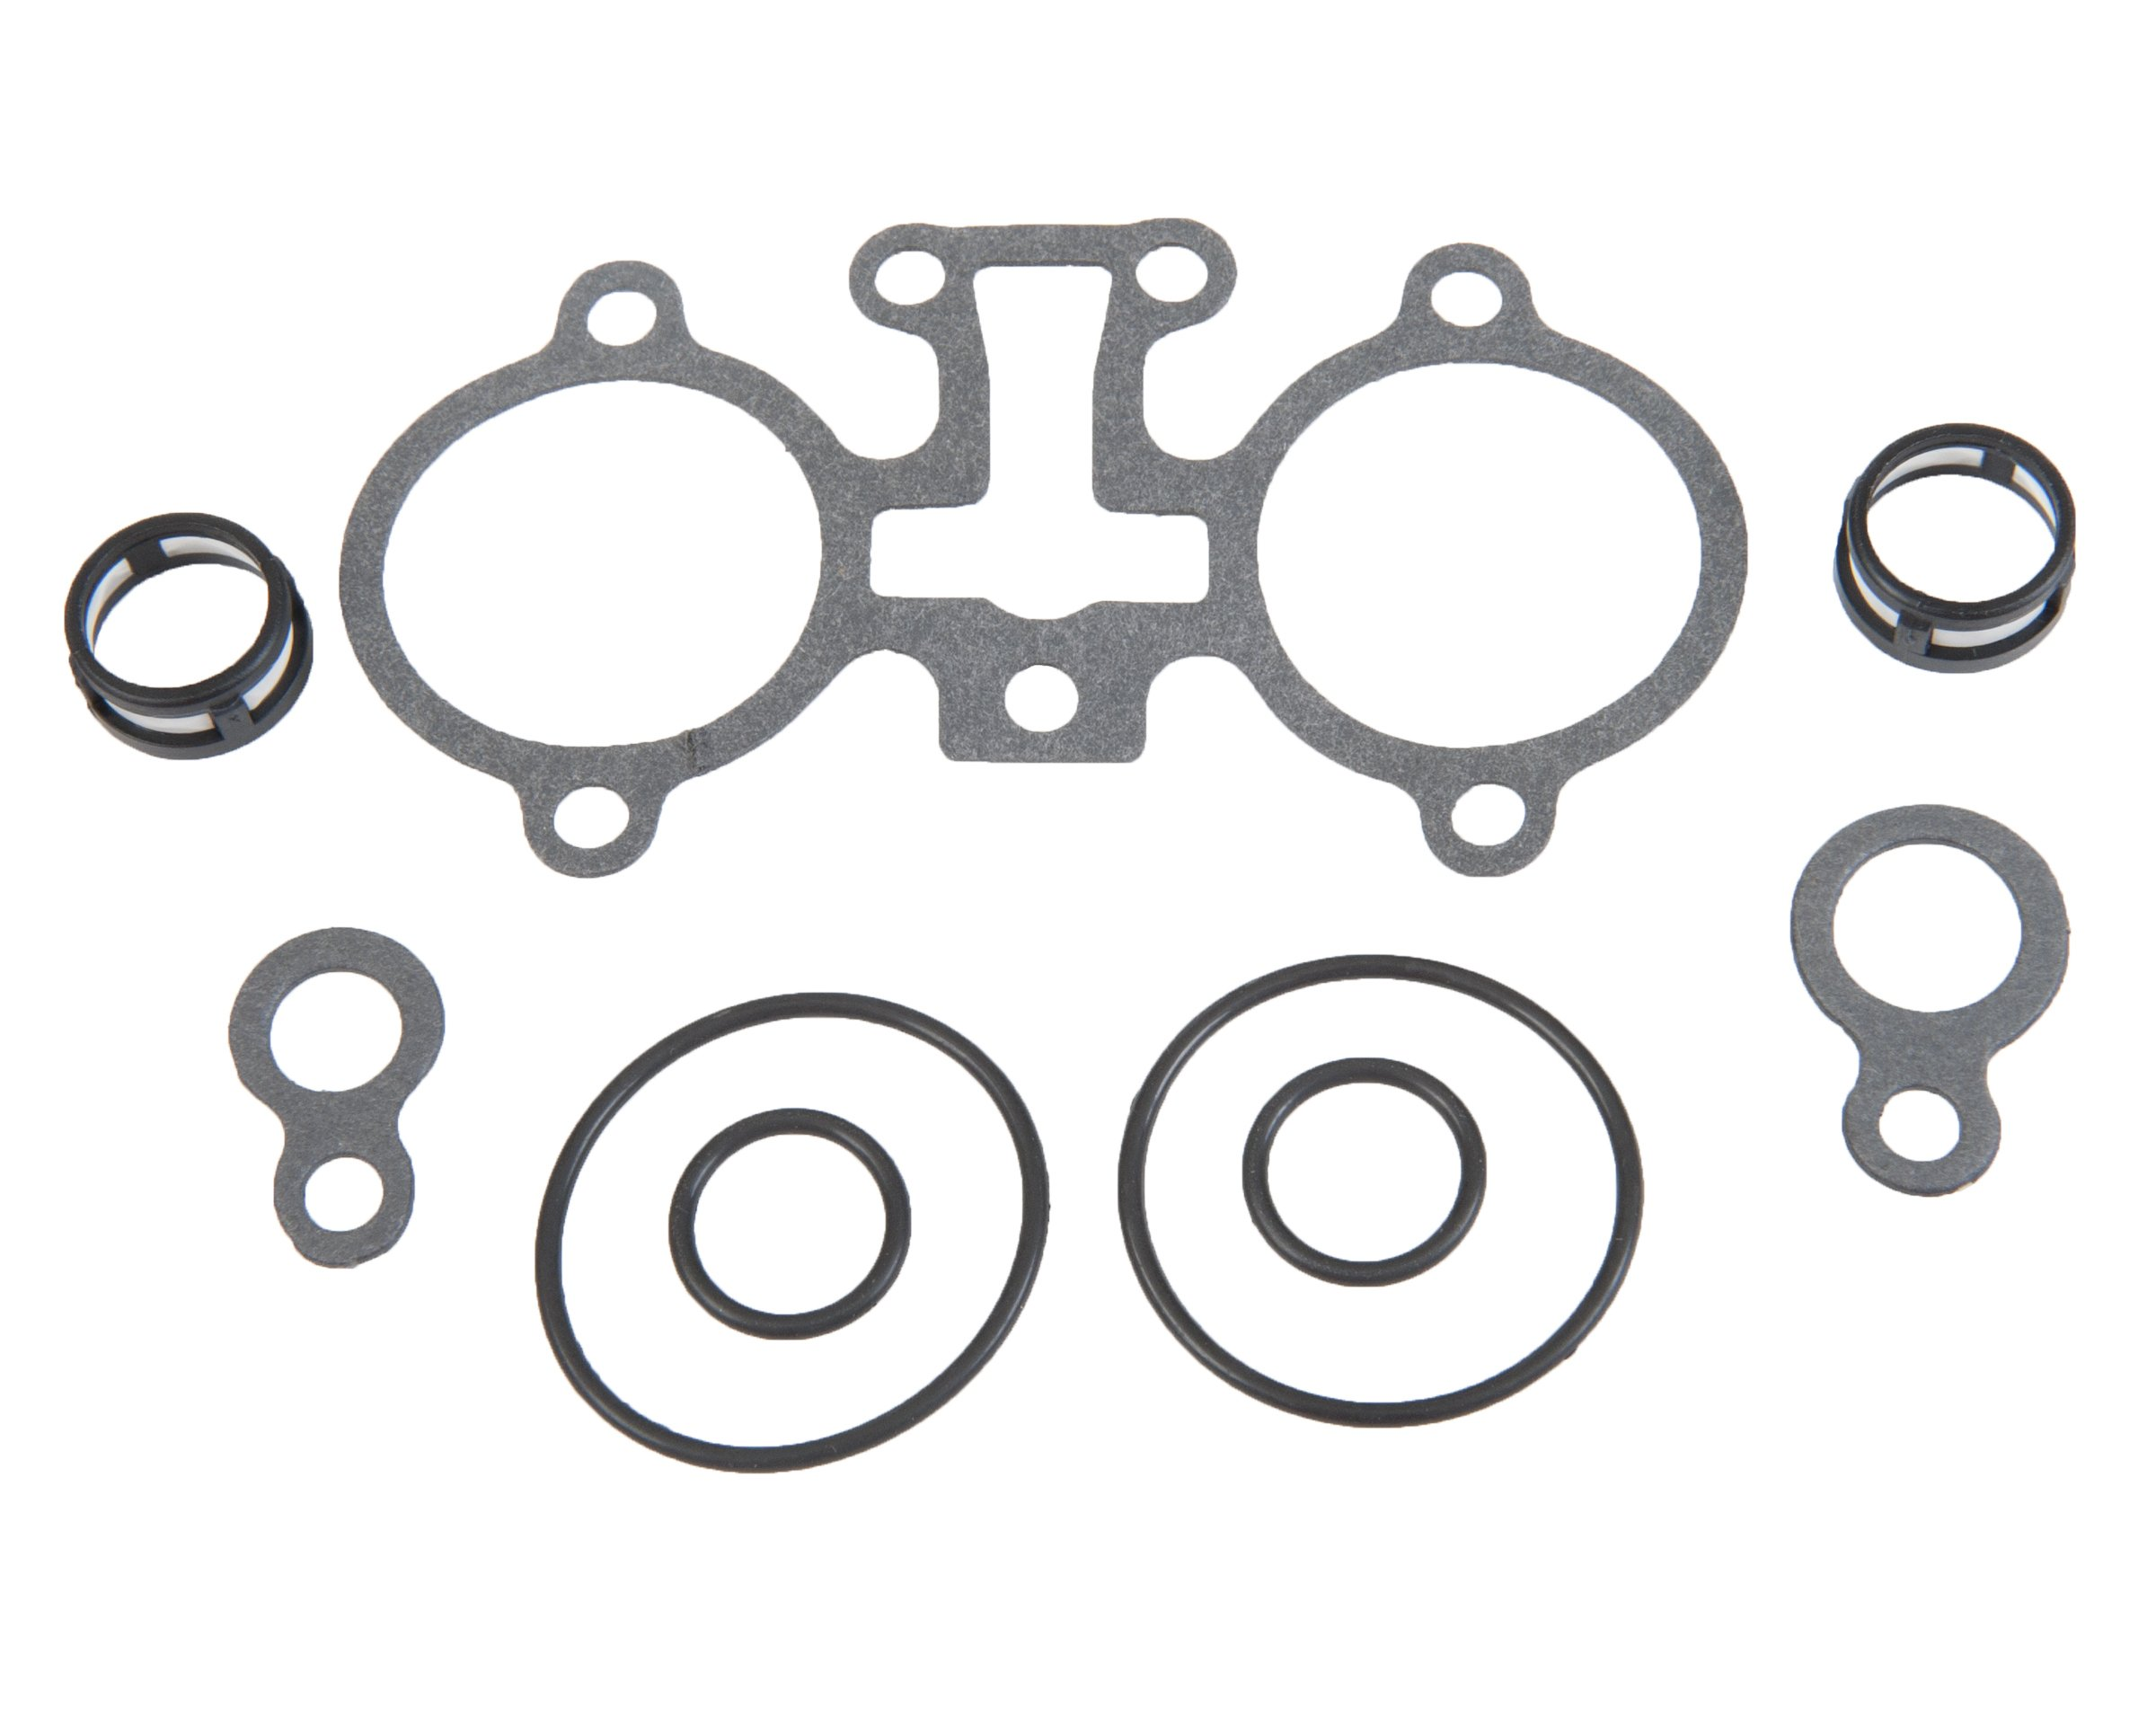 Sierra 18-7690 Injector Seal Kit by Sierra International